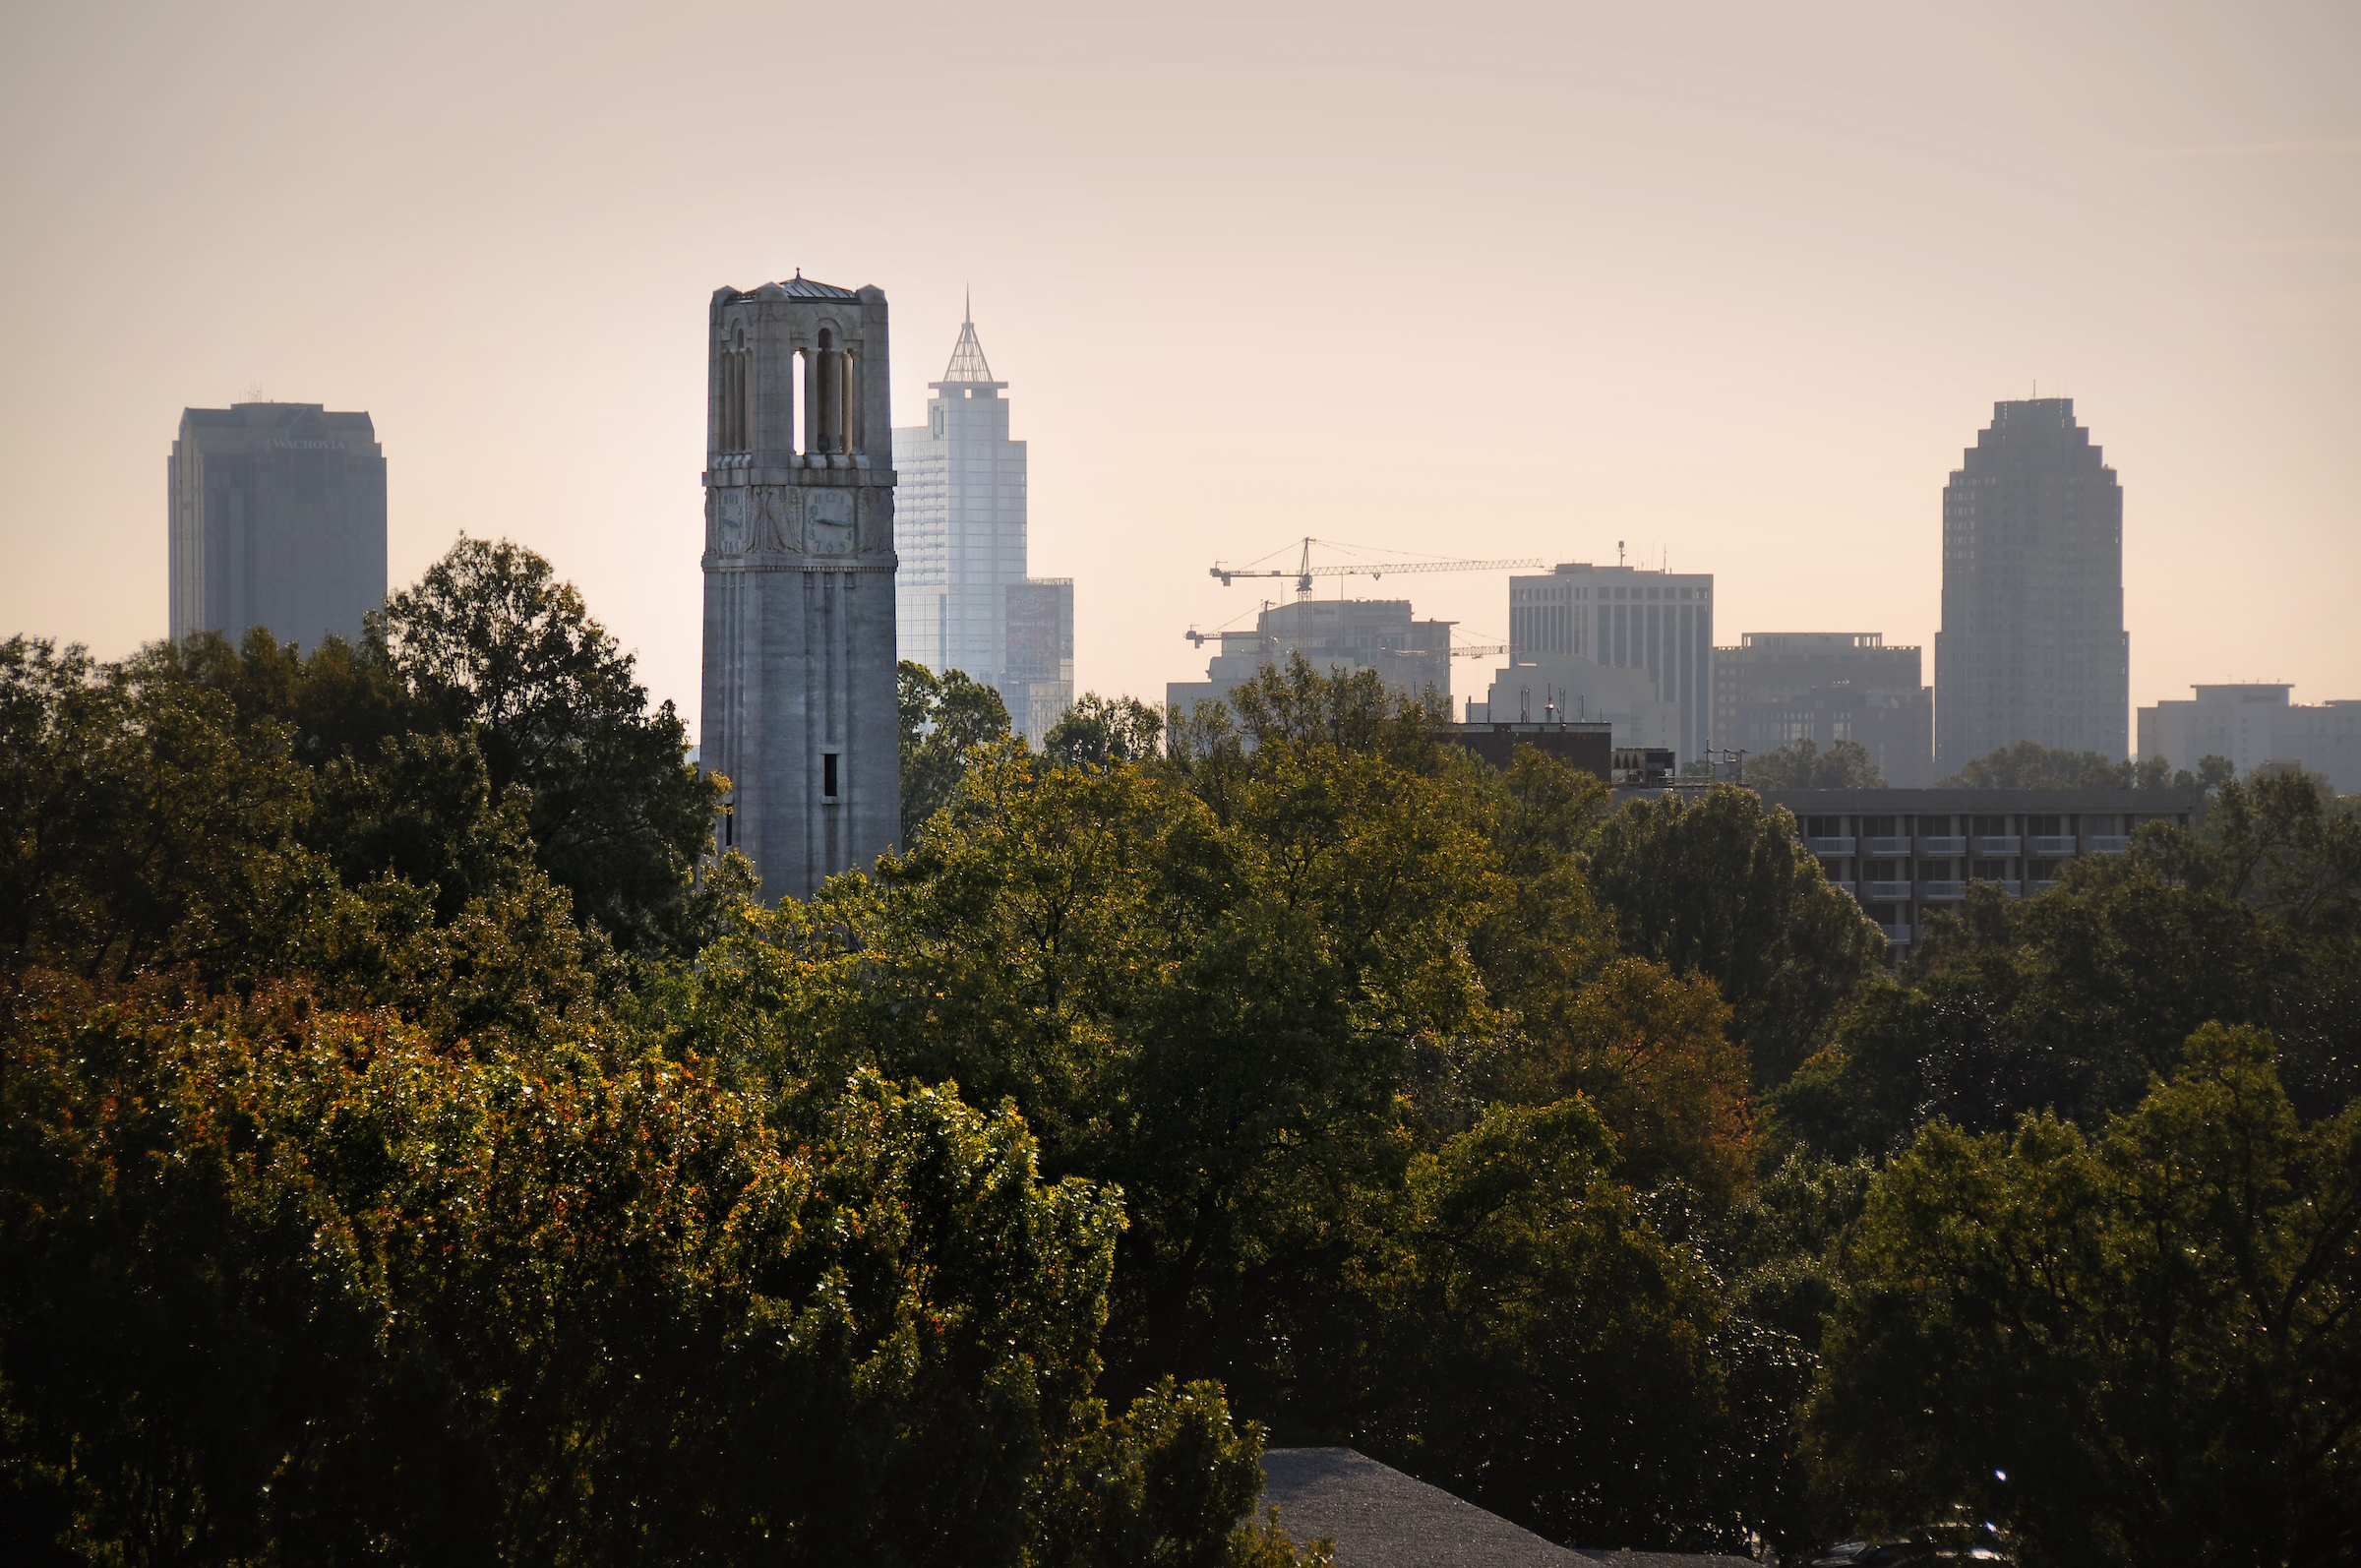 Belltower with Downtown Raleigh in the background.